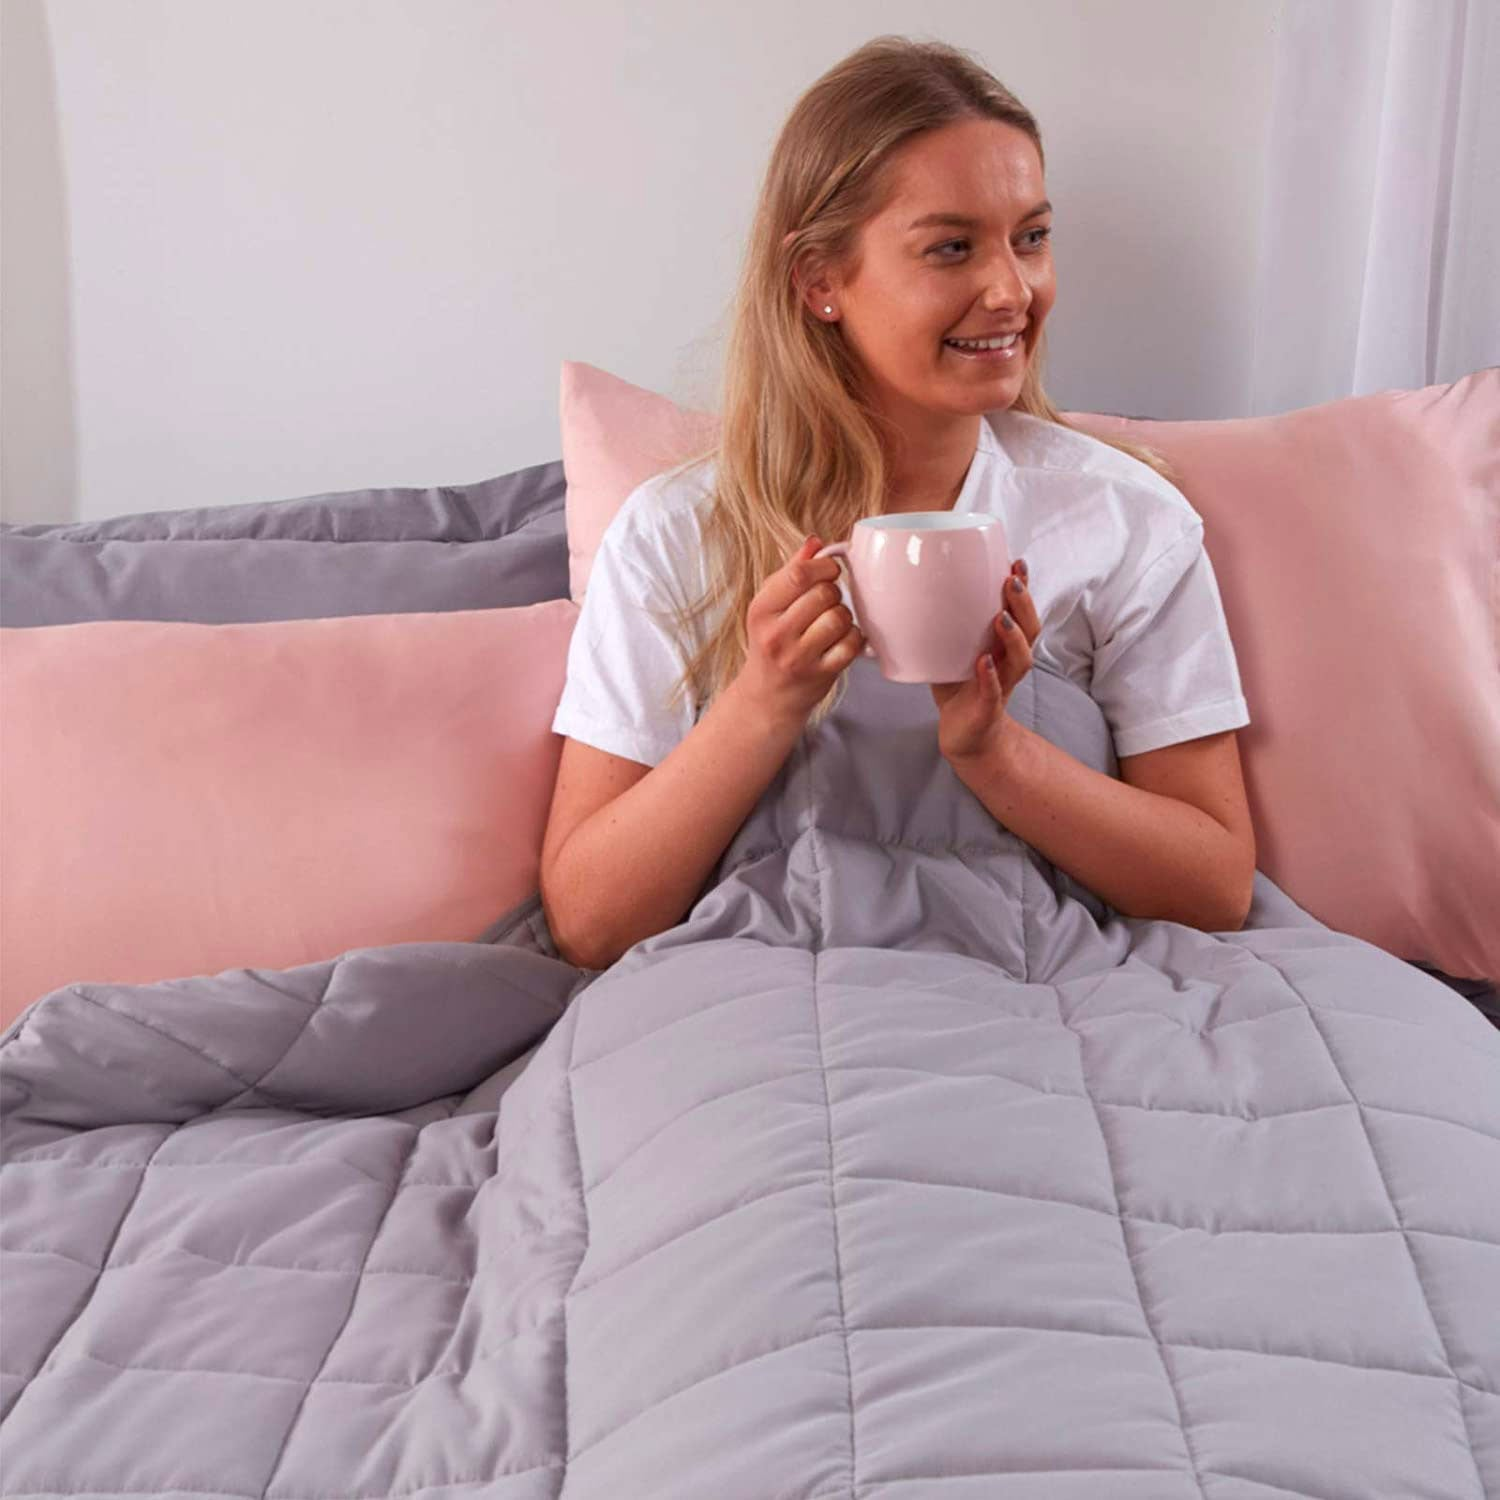 Brentfords Weighted Blanket Adults Teenagers Kids Therapy Sensory Anxiety Autism Insomnia Stress Relief-Silver Grey